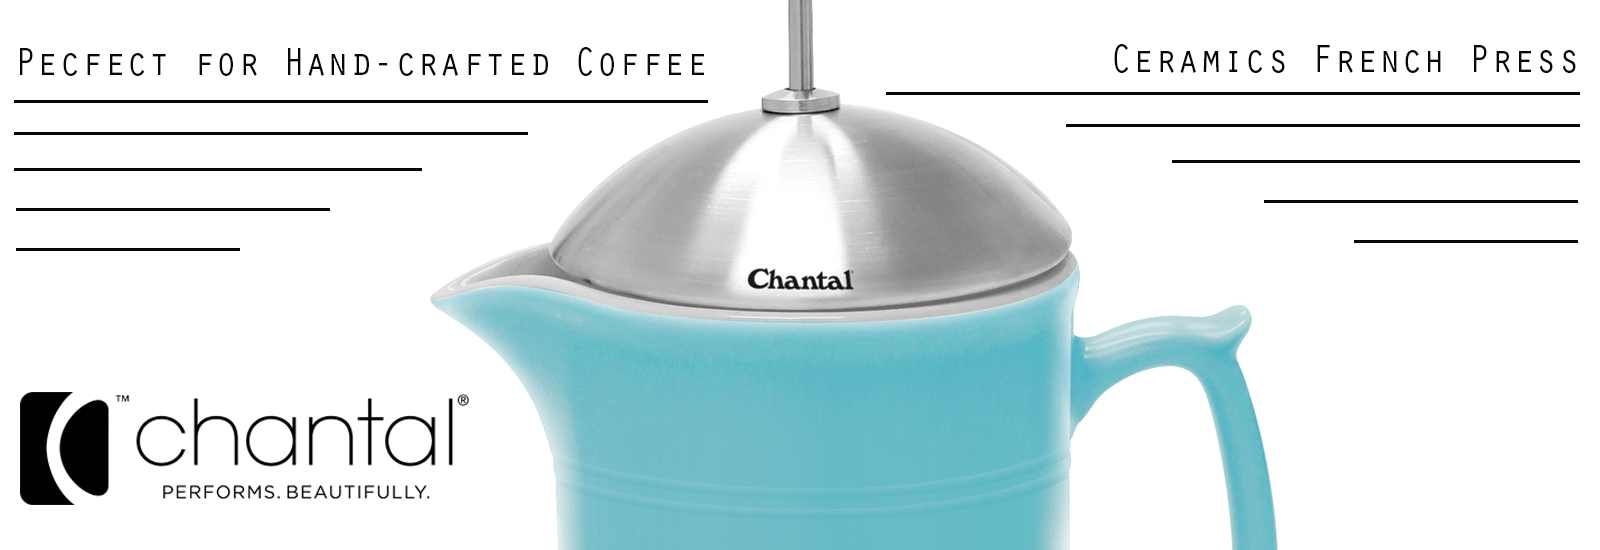 chantal Ceramic French Press